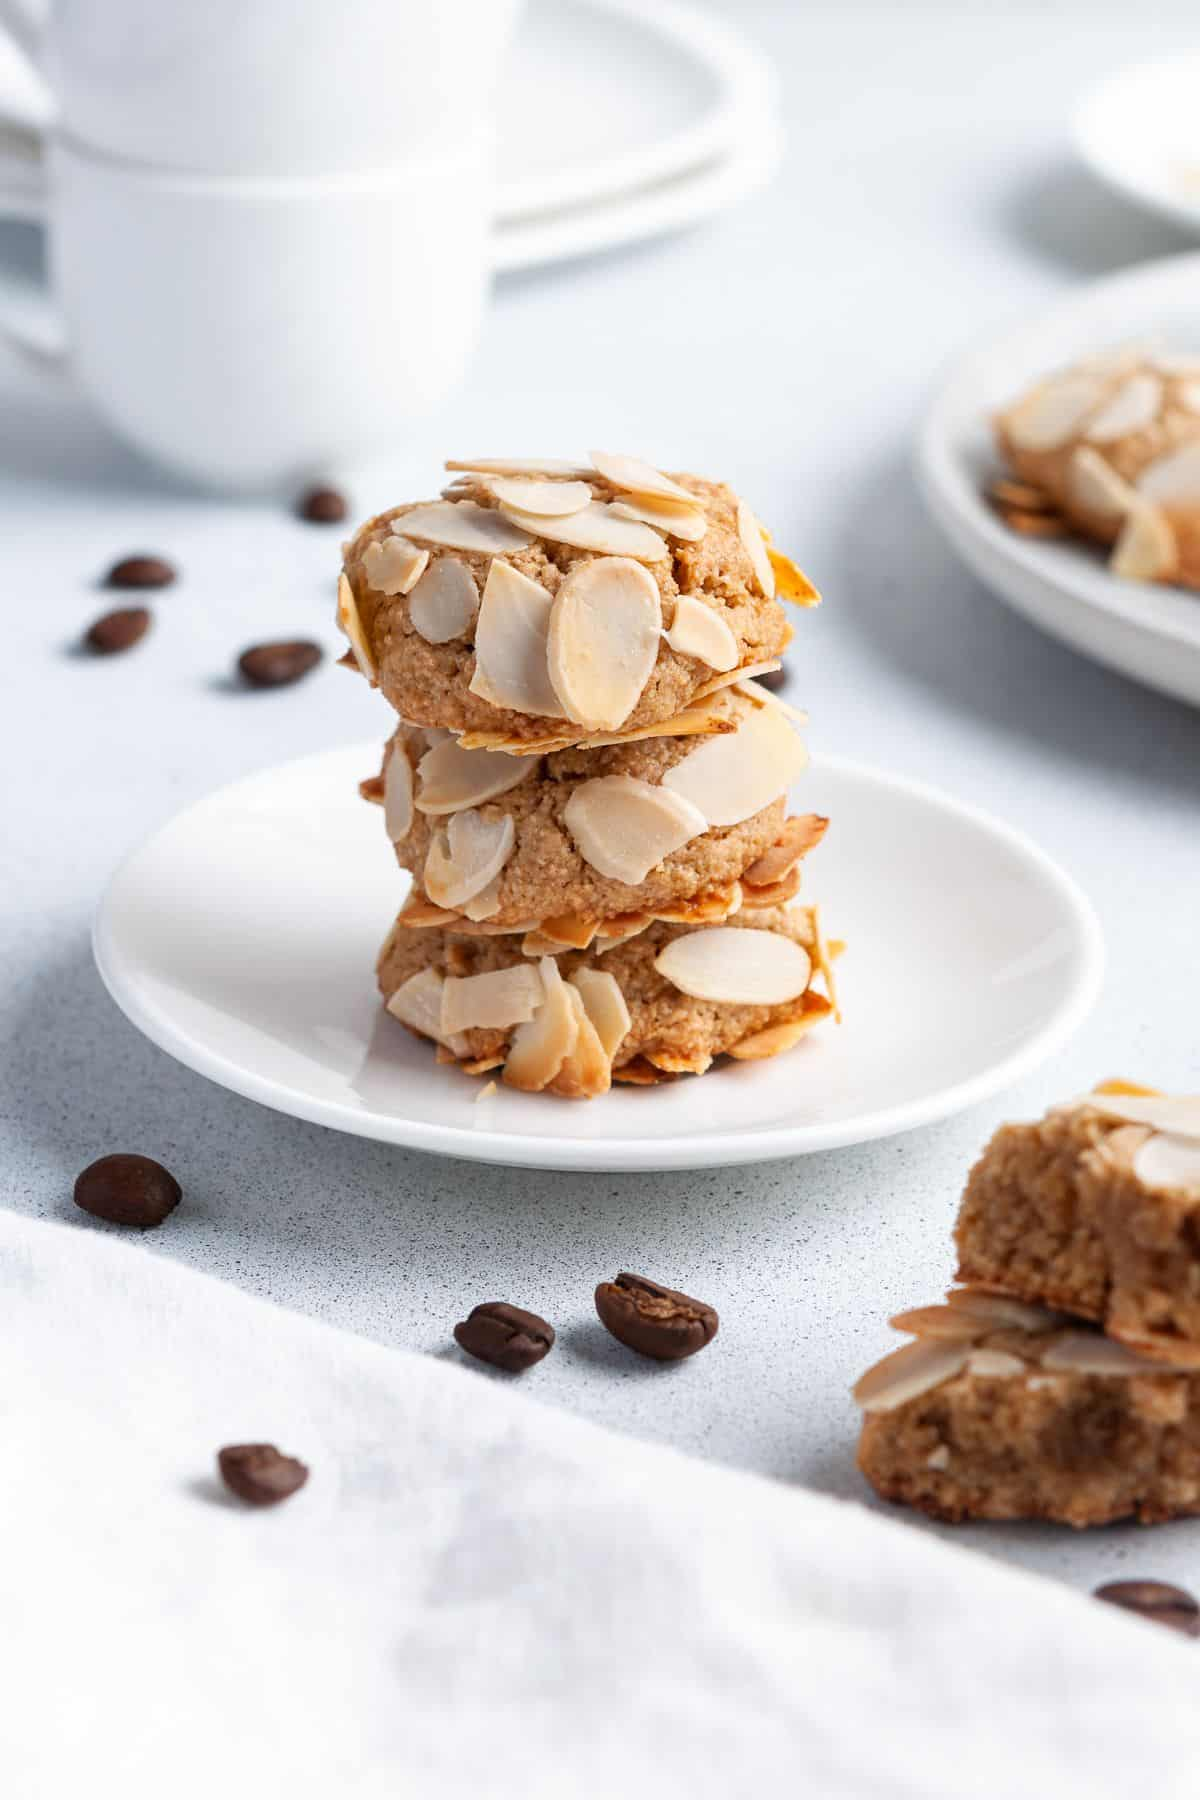 Stack of three cookies sitting on a small round white plate, with some coffee beans around the edge.